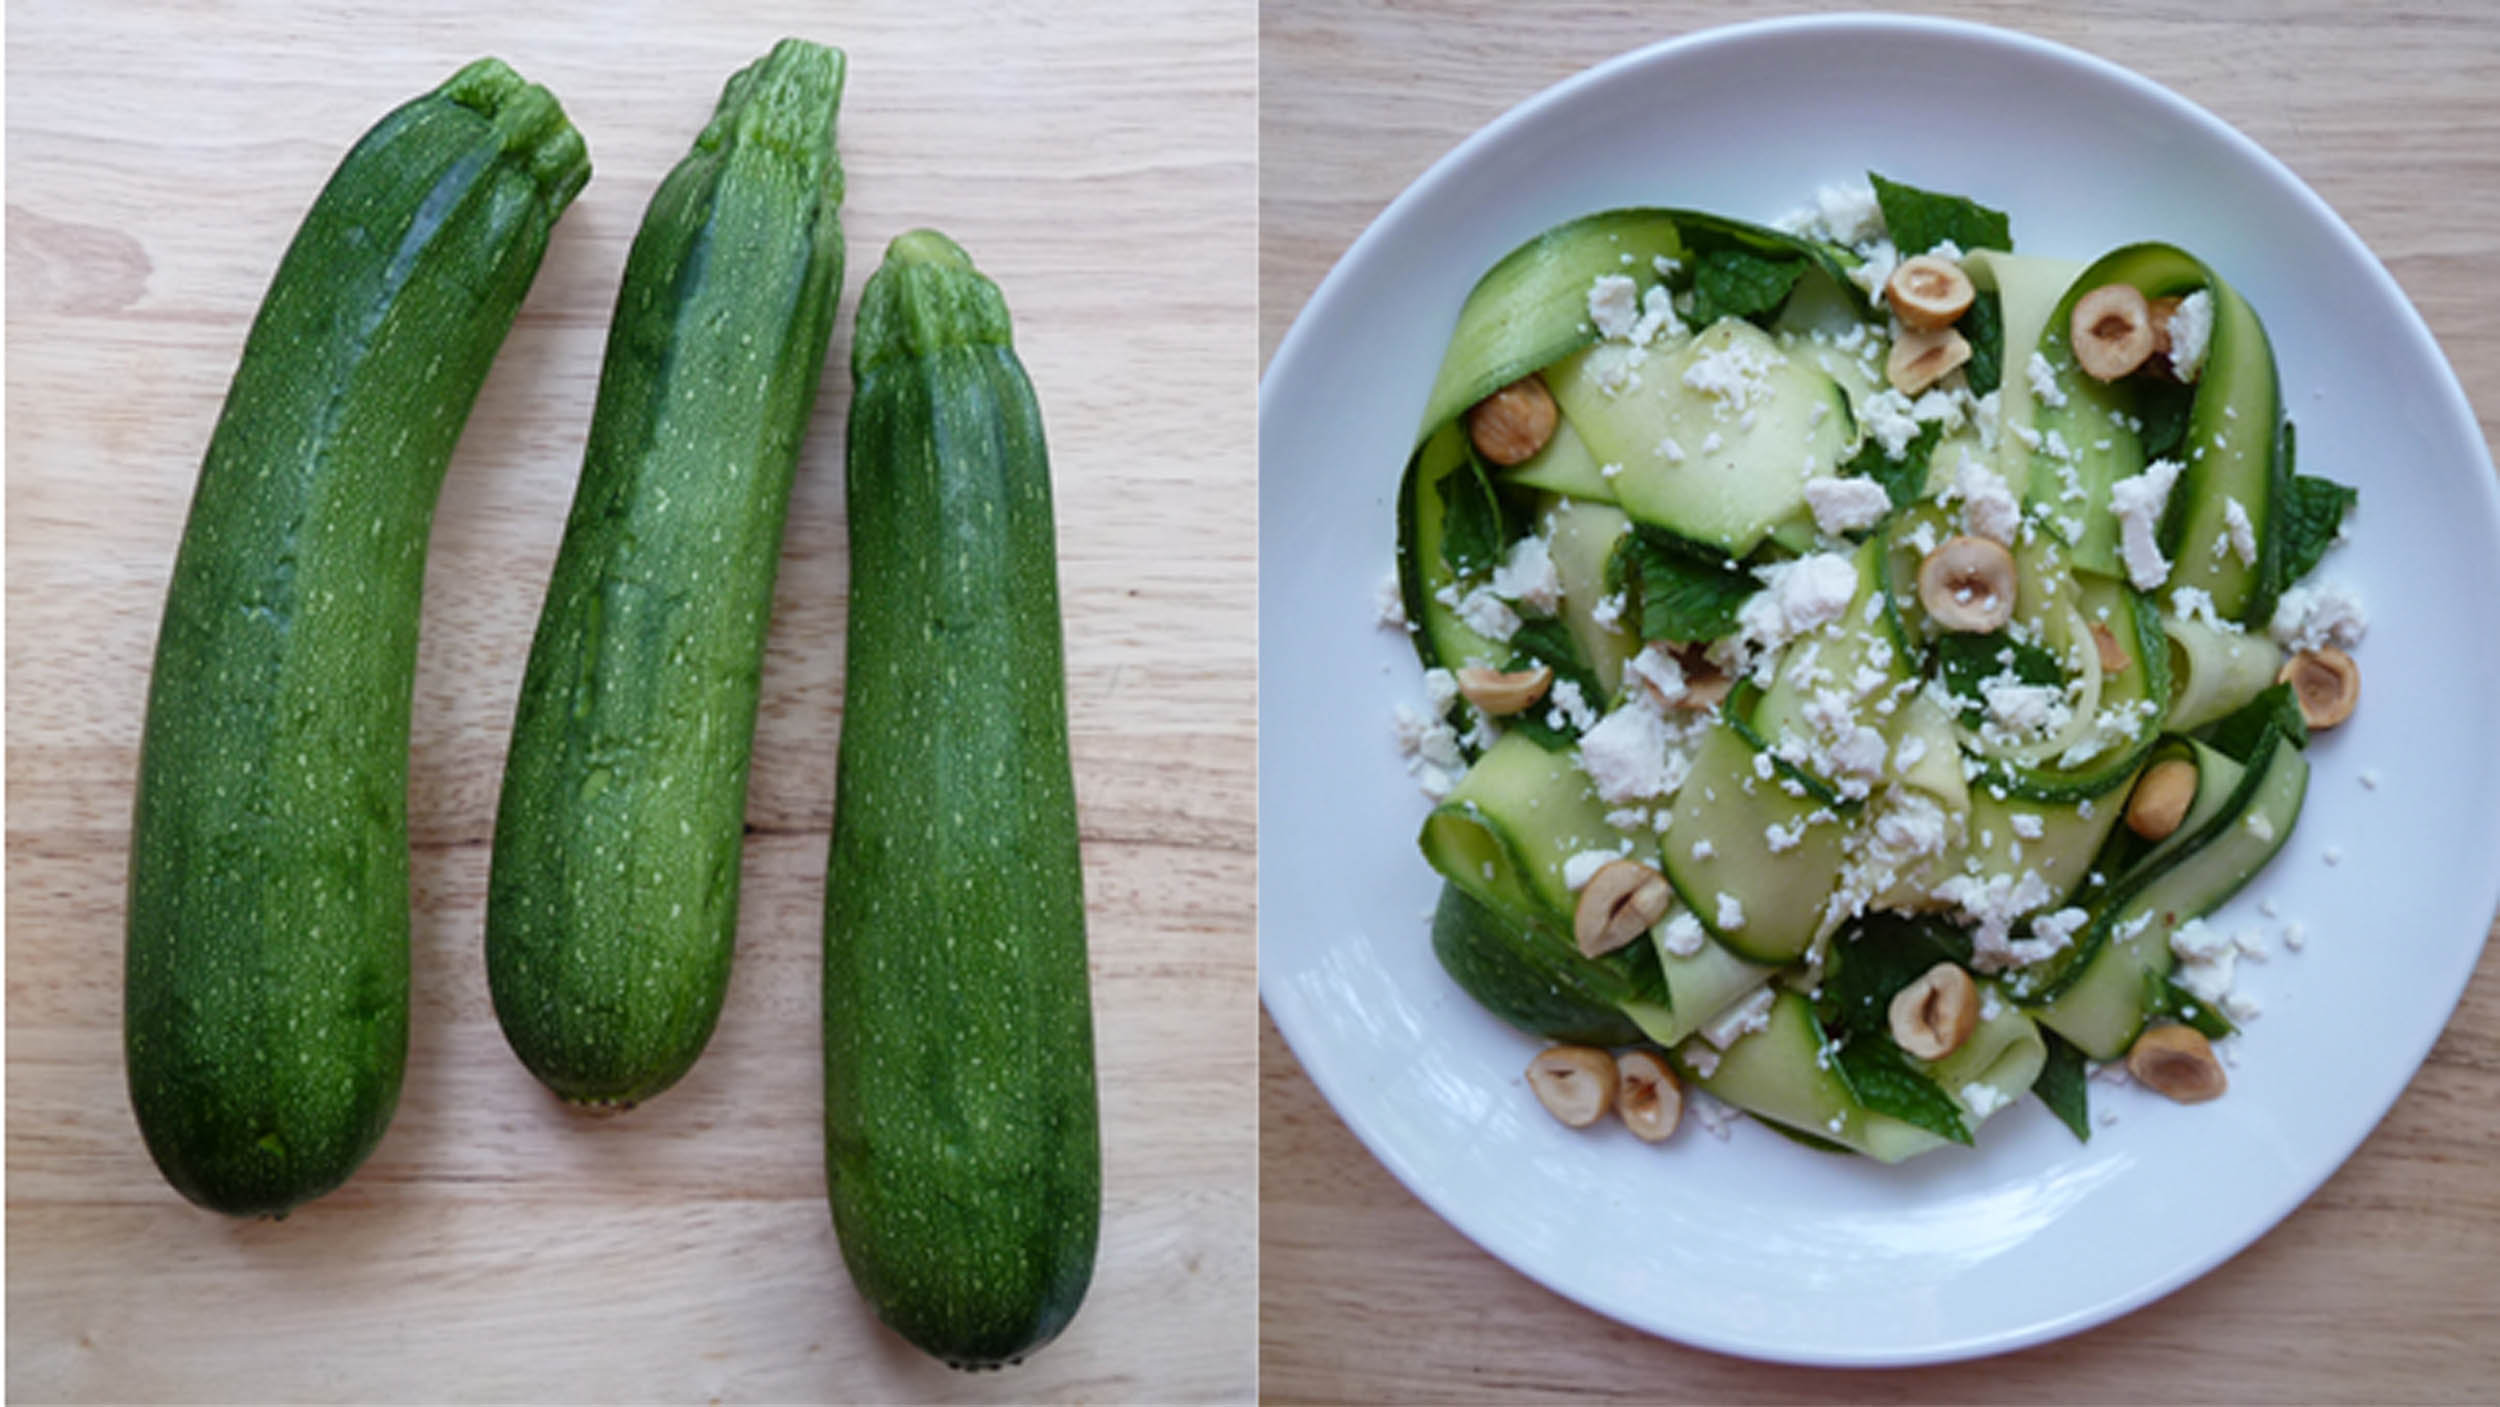 zucchini recipes cook recipe today healthy tips split fries vegetable